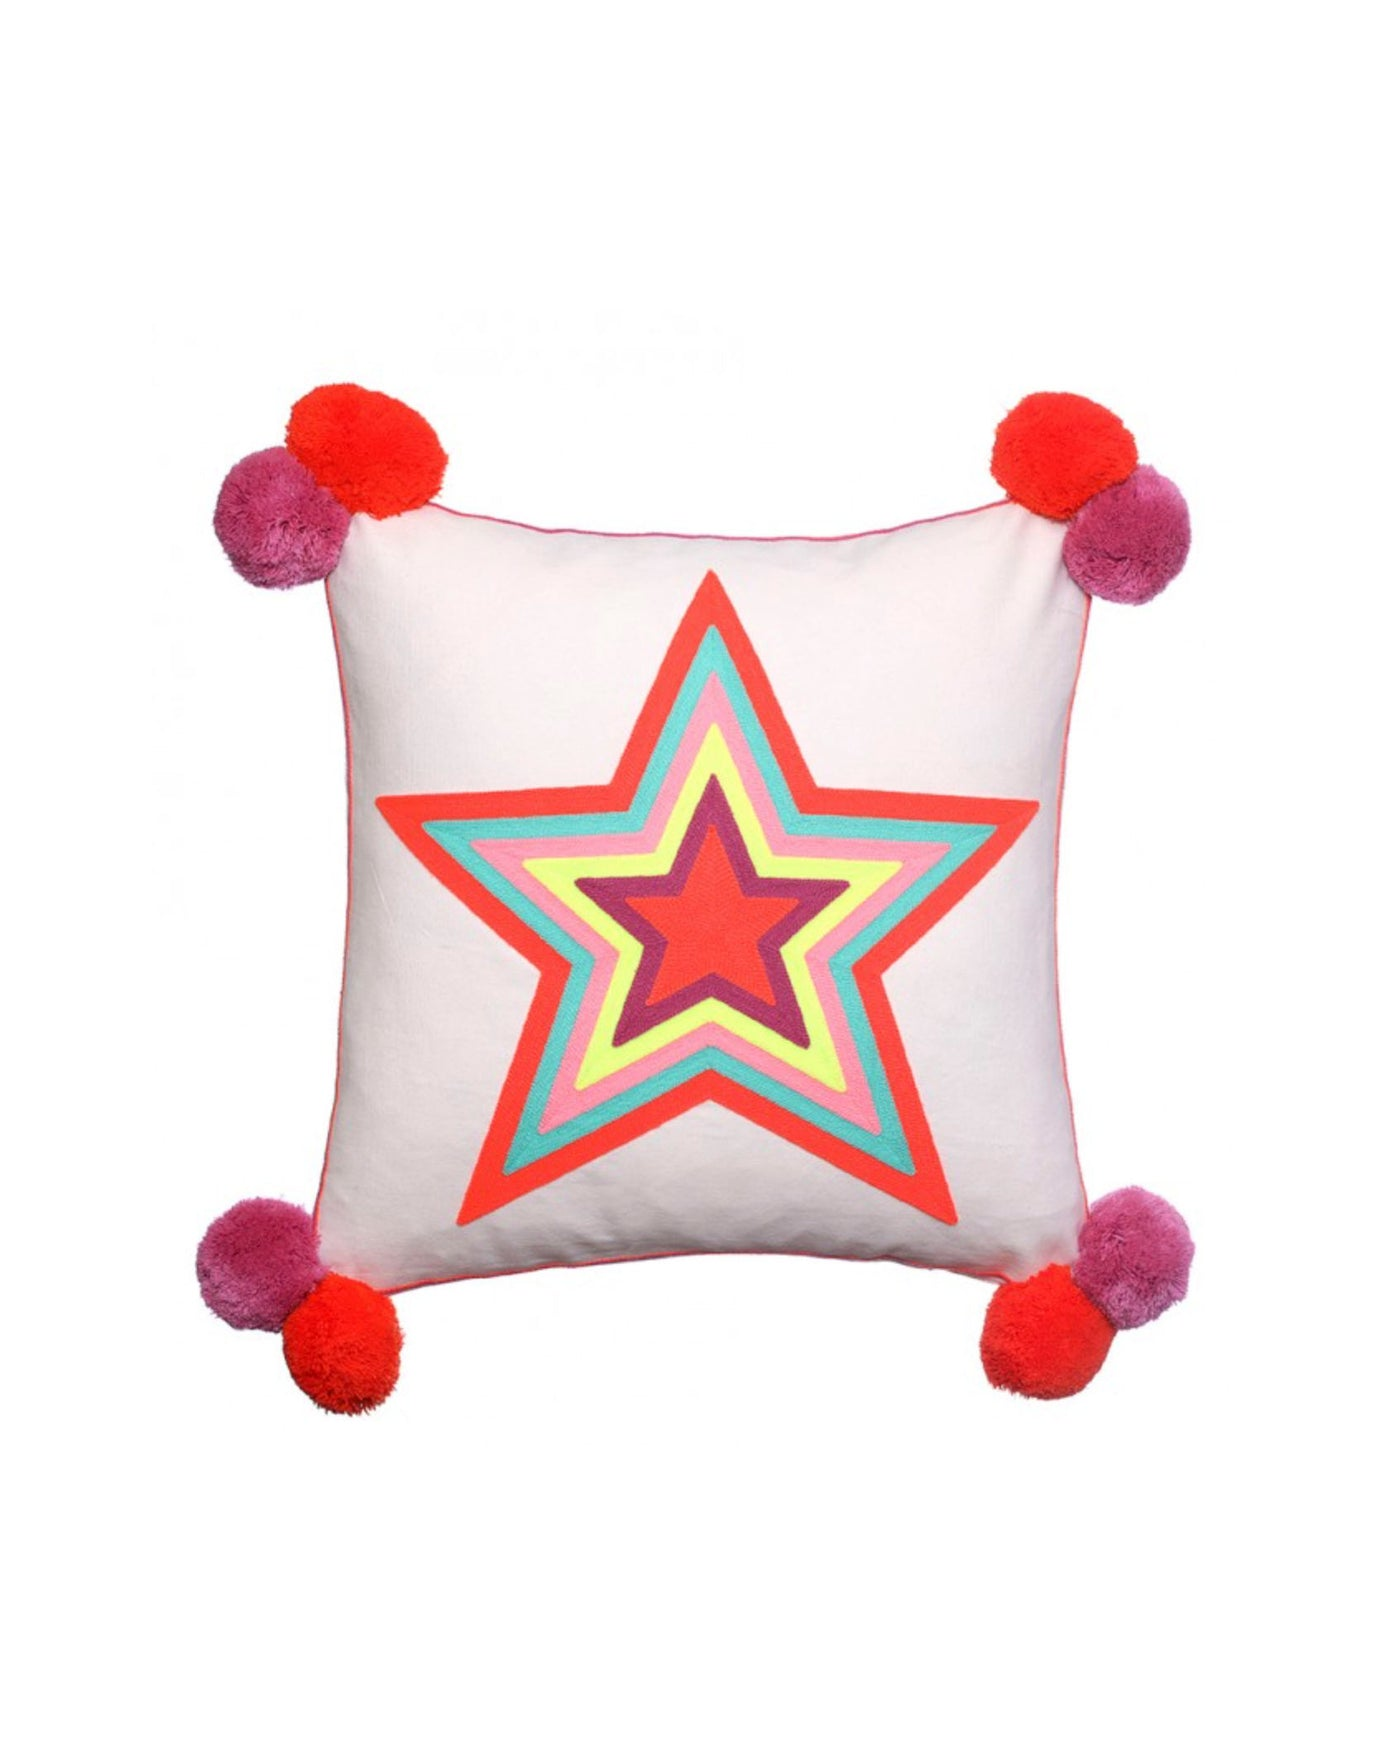 What a Star Embroidered Cushion